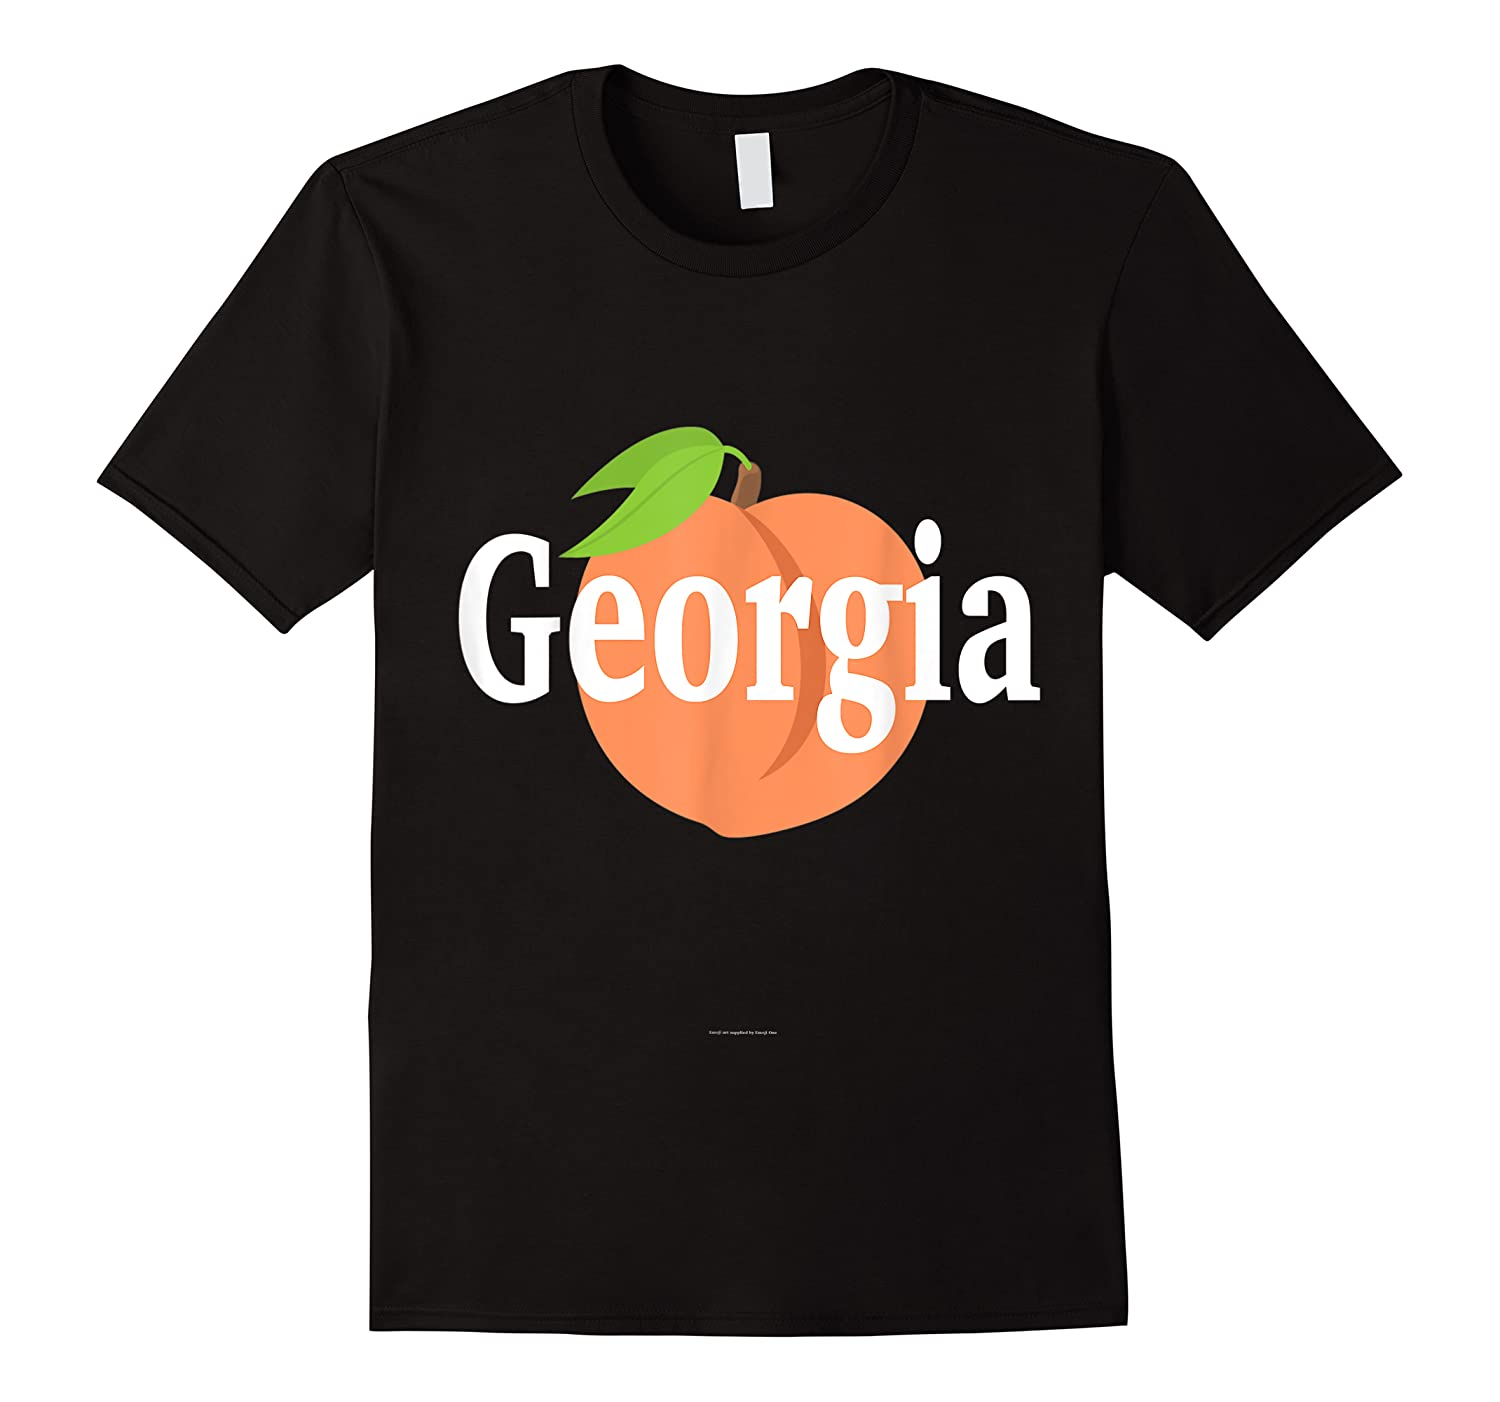 Georgia Peach State Pride Southern Roots T Shirt